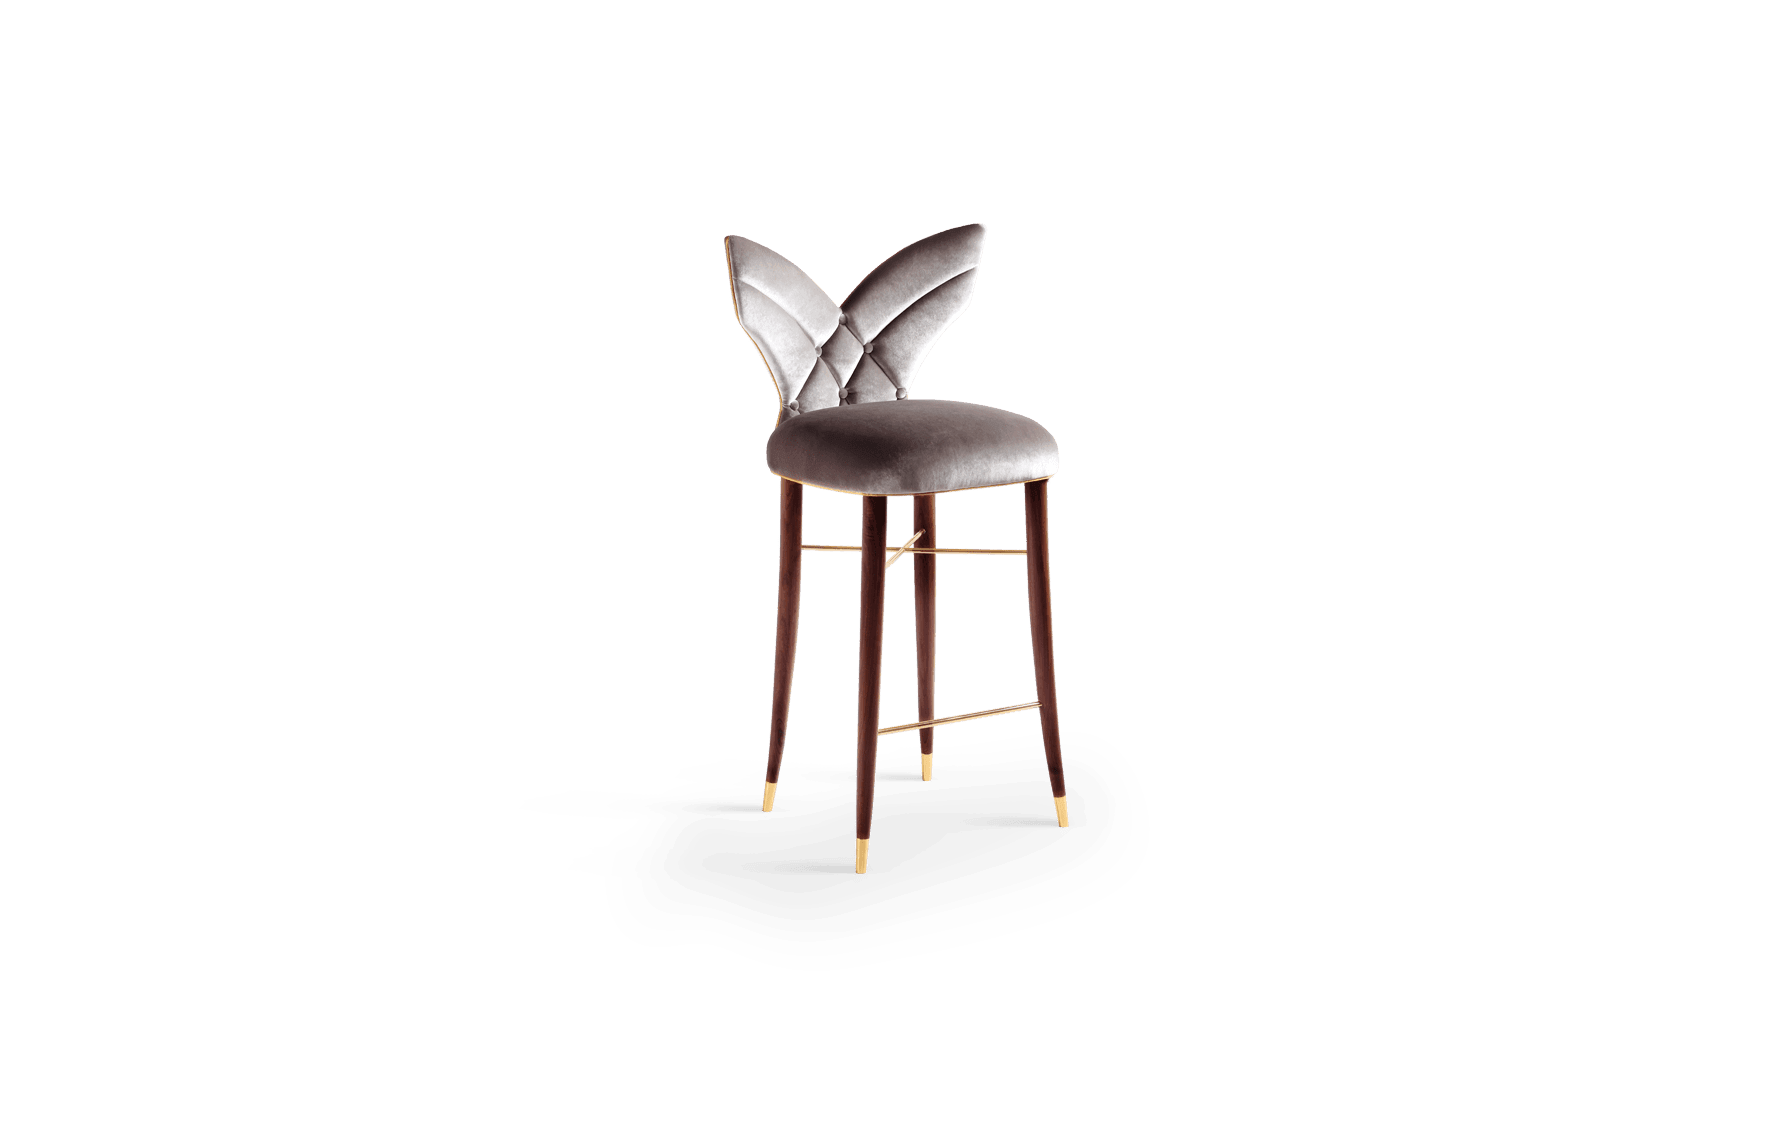 Luna Mid-Century Modern Bar Chair in silver grey velvet with gold piping